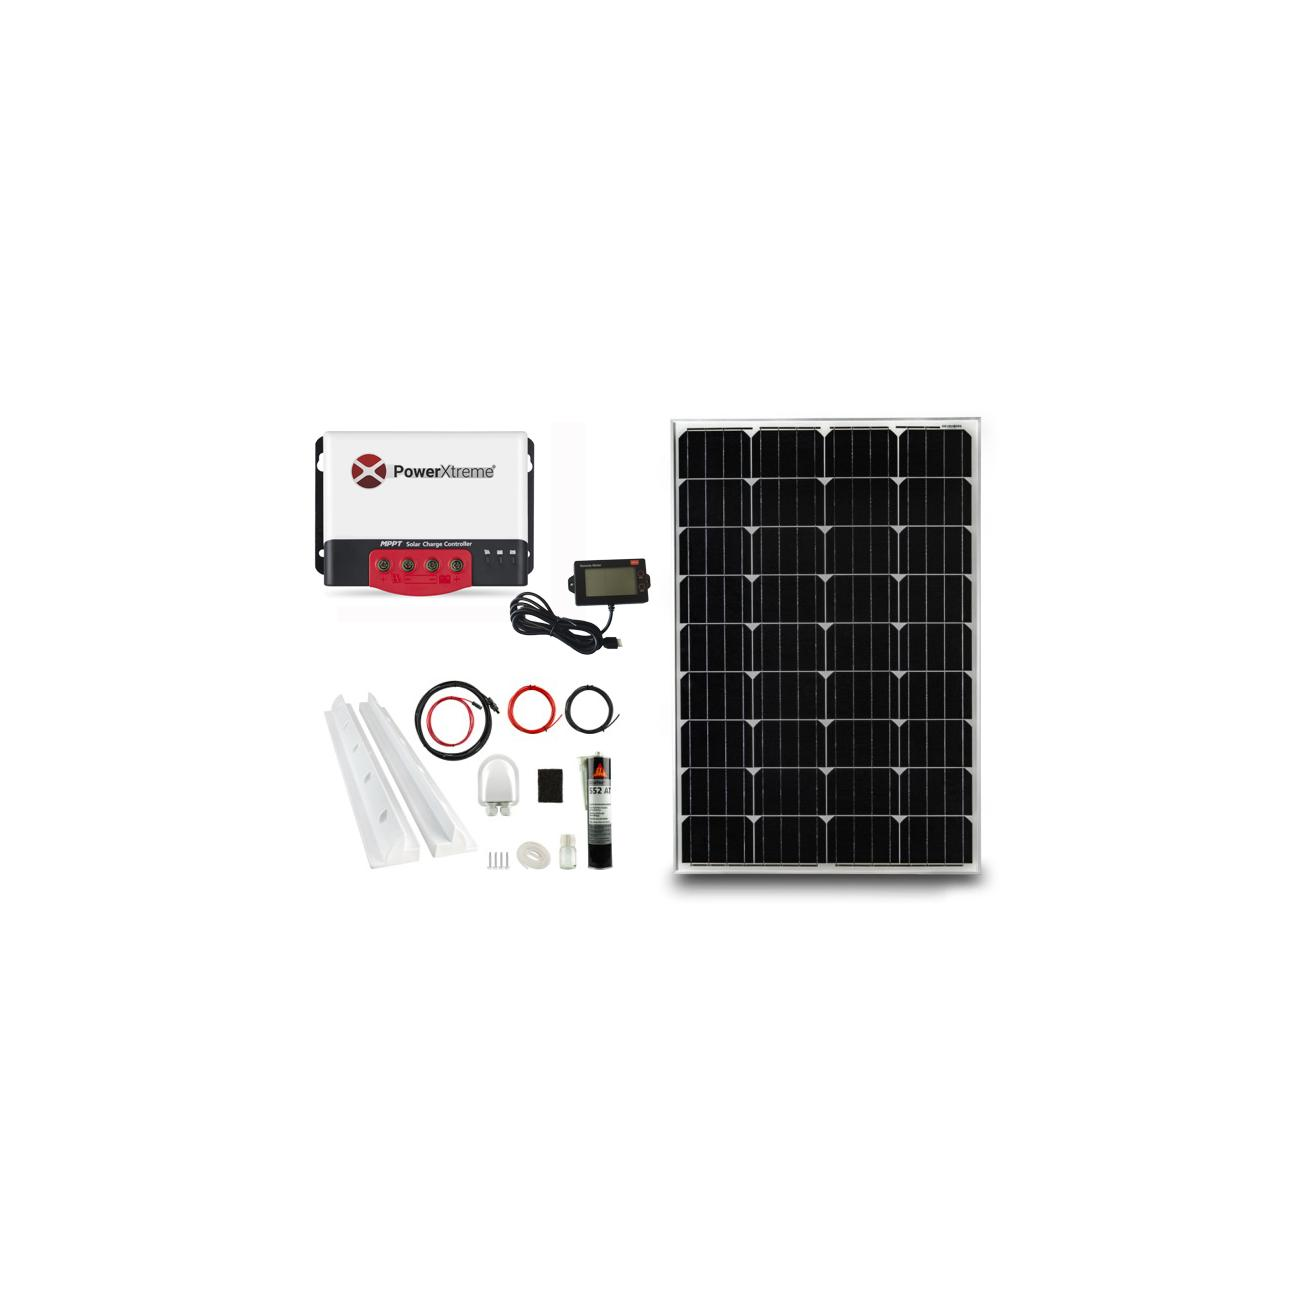 Power XS20s Solar MPPT With Display 100W Package